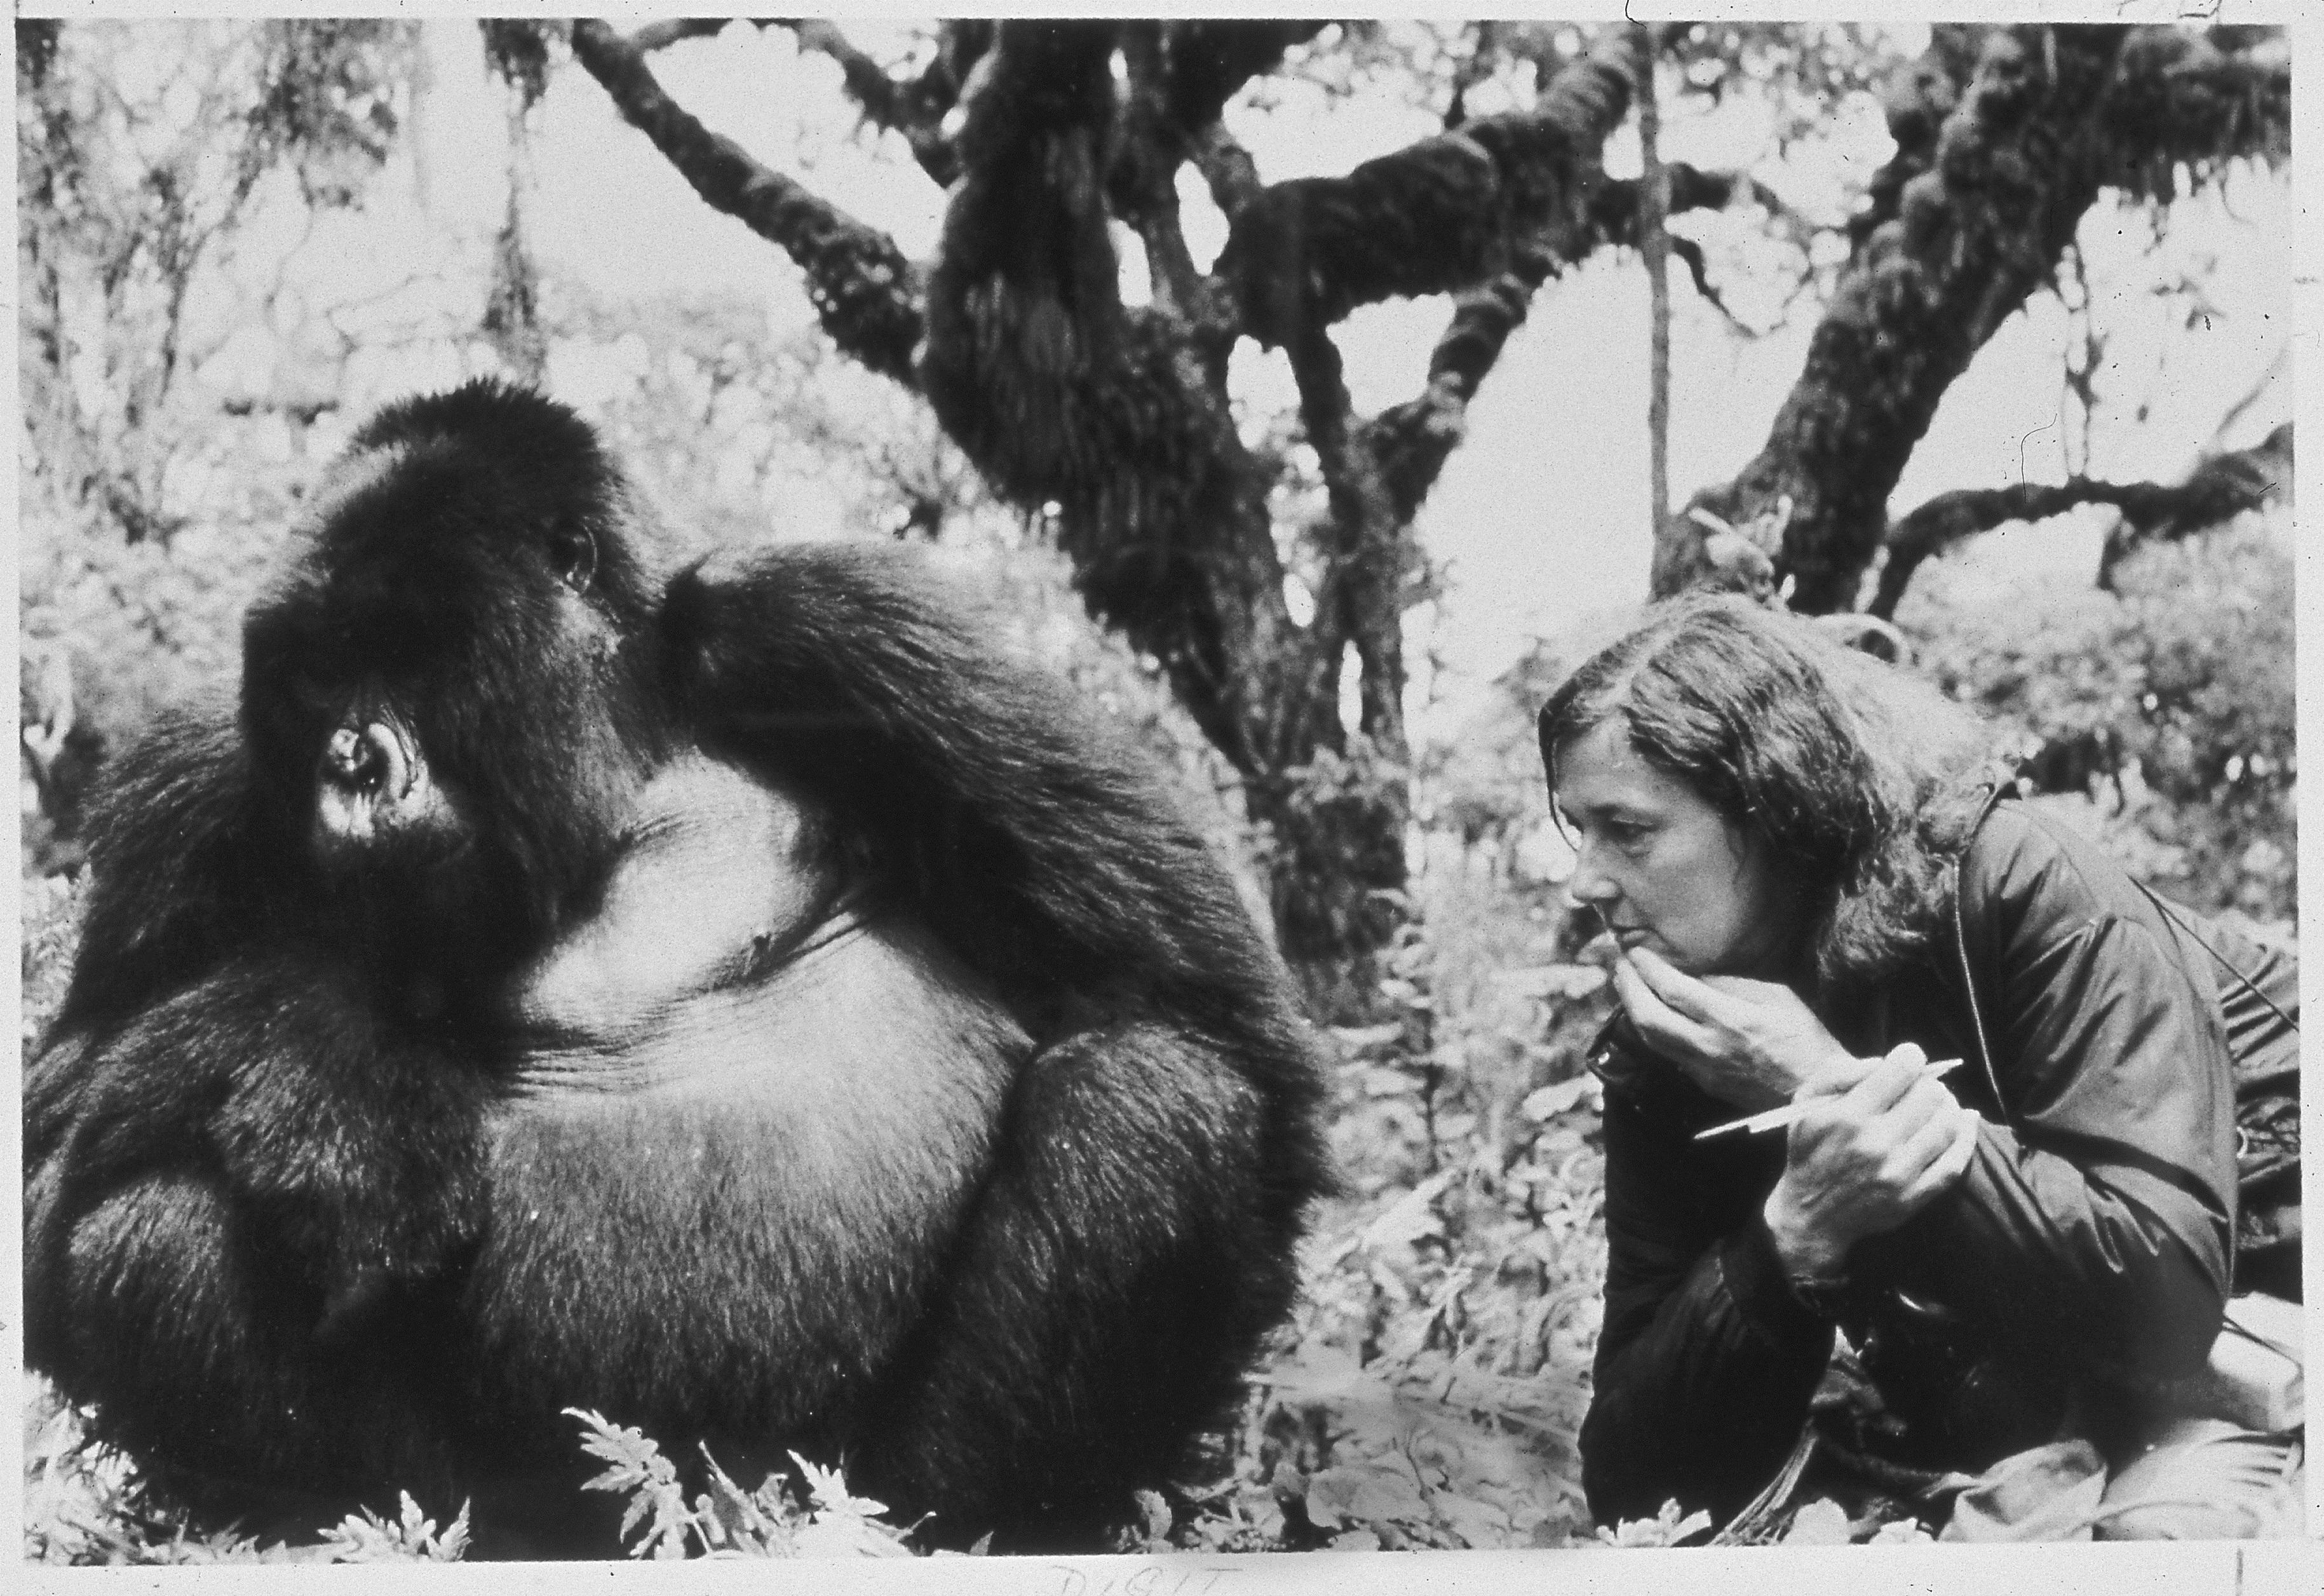 Dian Fossey and Digit